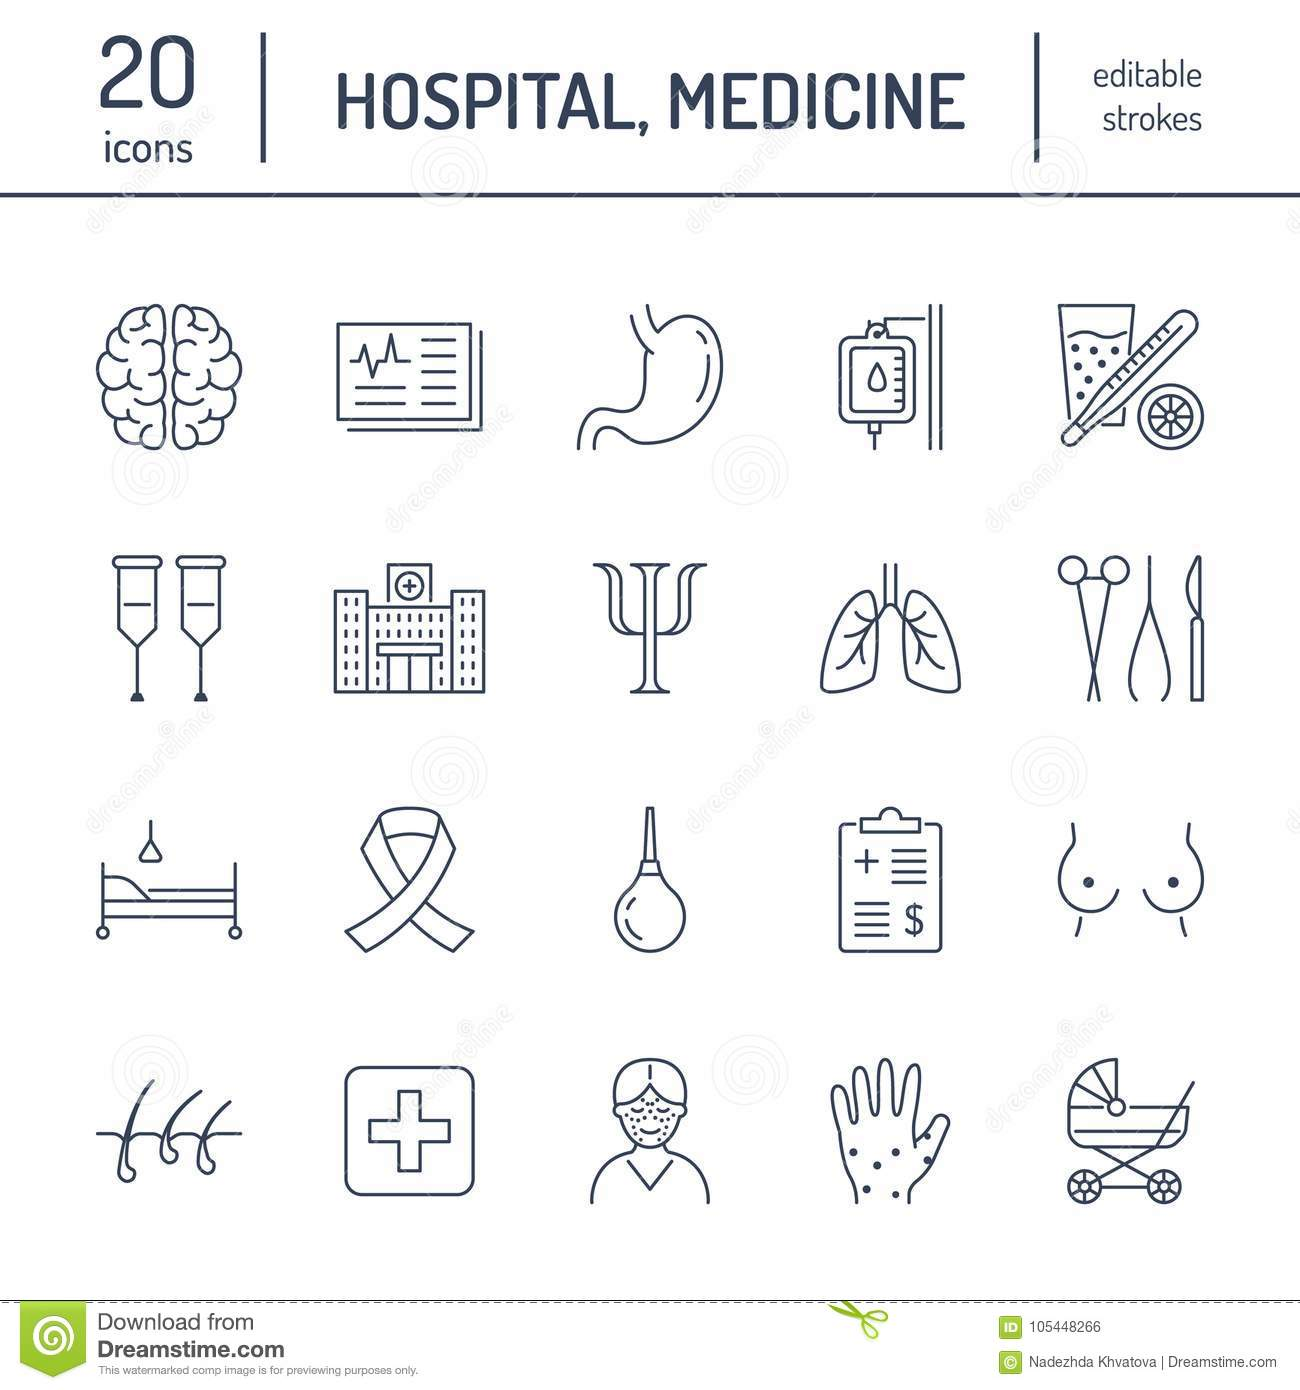 Hospital, medical flat line icons. Human organs, stomach, brain, flu, oncology, plastic surgery, psychology, breast